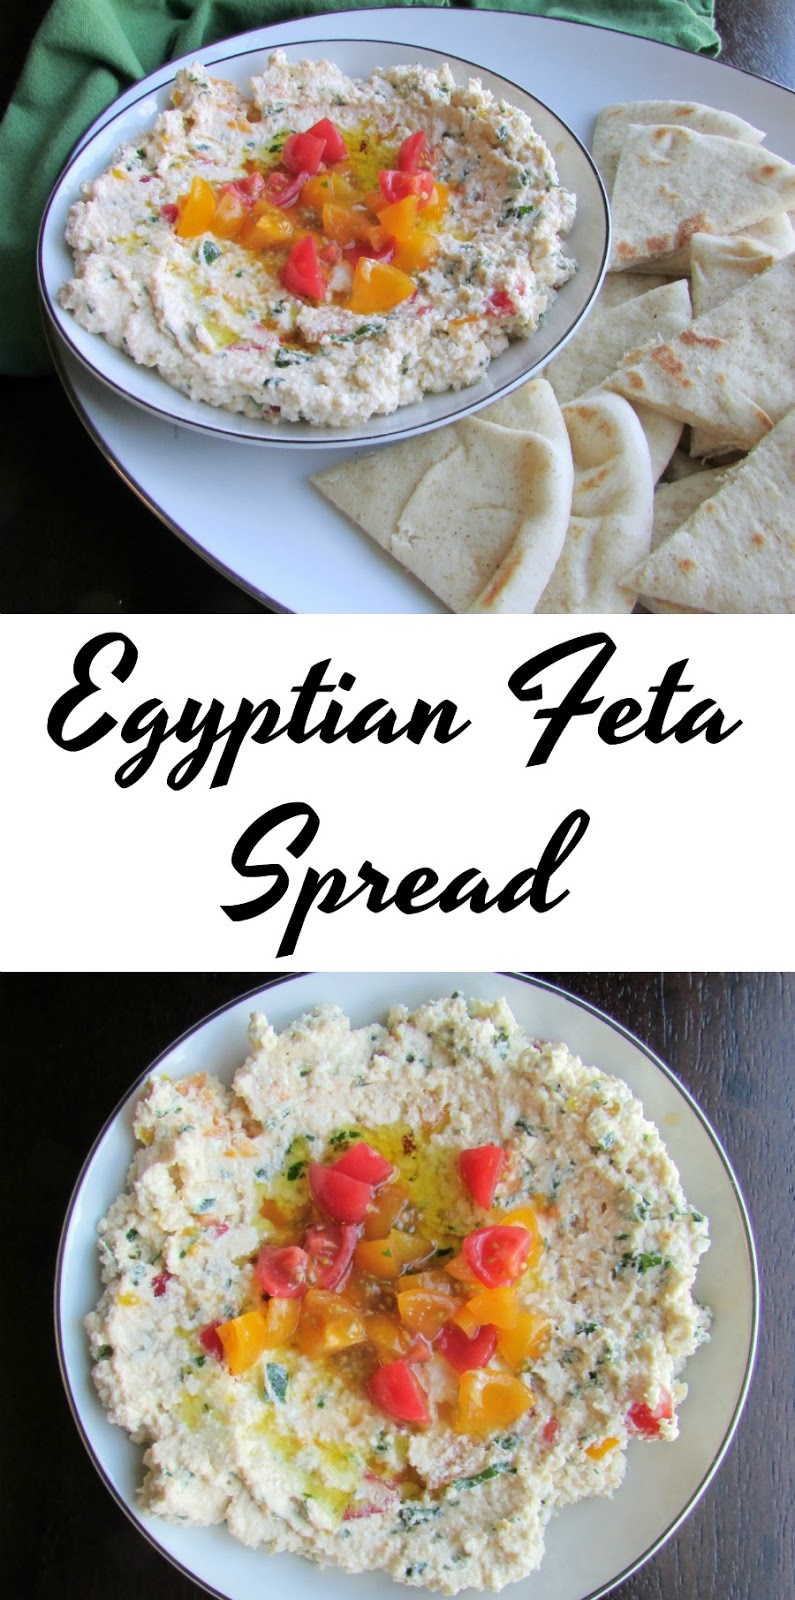 A perfect mix of fresh herbs, lemon juice, feta, tomatoes and extra virgin olive oil spread over pita. This would make a perfect starter for your next meal!